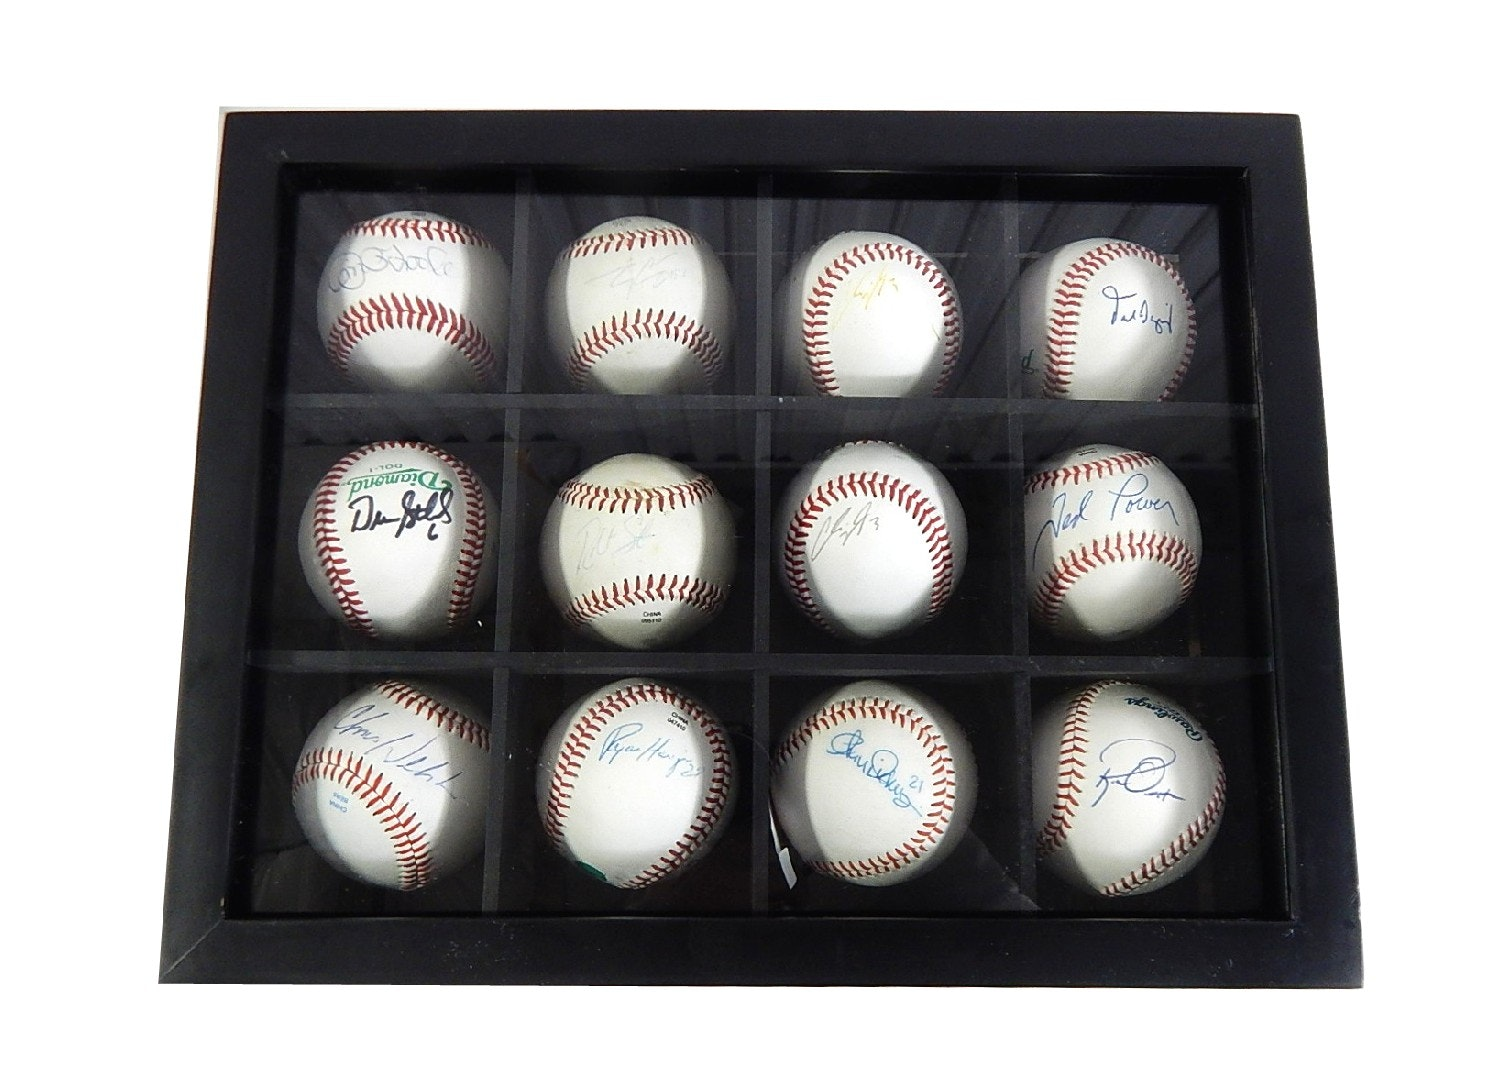 Twelve Cincinnati Reds Signed Baseballs with Oester, Power, Cigrani, O'Toole